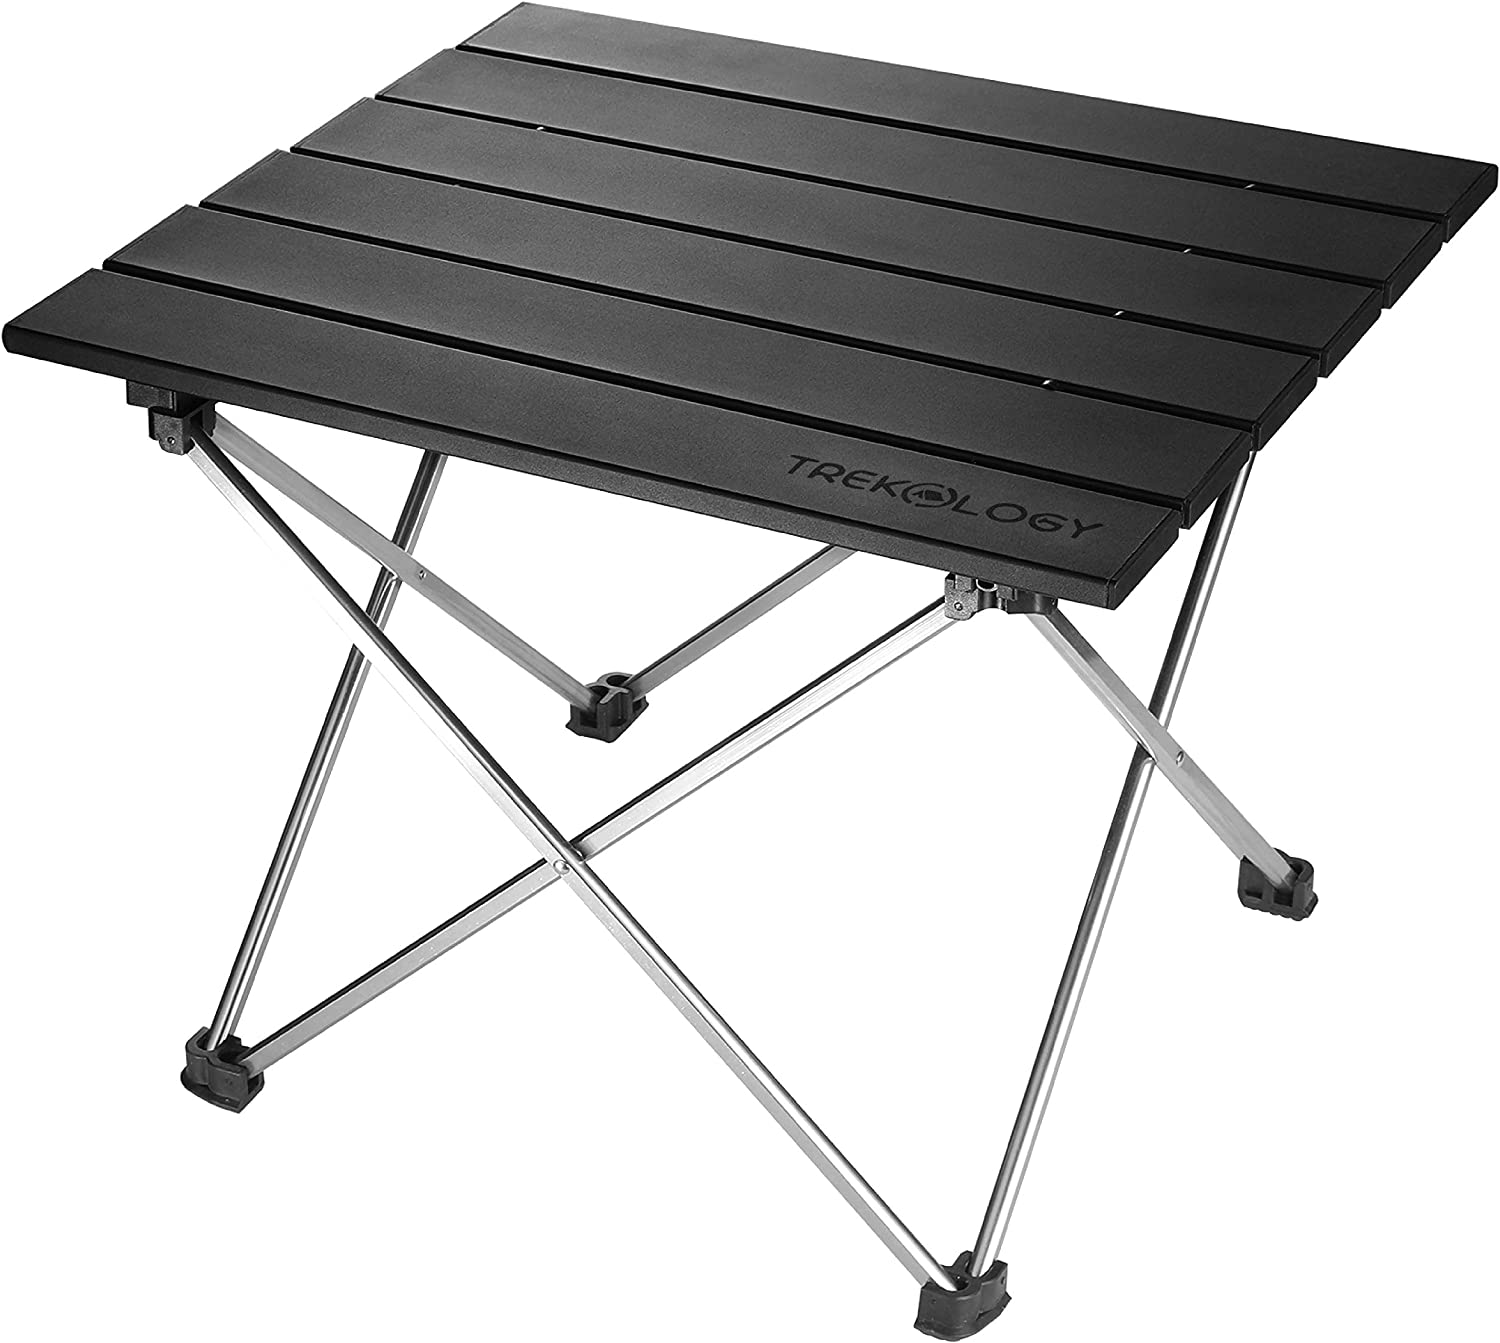 Folding Camping Table Portable – Small Folding Beach Table – Portable Picnic Table – Small Aluminum Side Table Lightweight Cam Table for Biking,Backpacking Camp, RV, Car, Travel, Motorcycle, Fishing